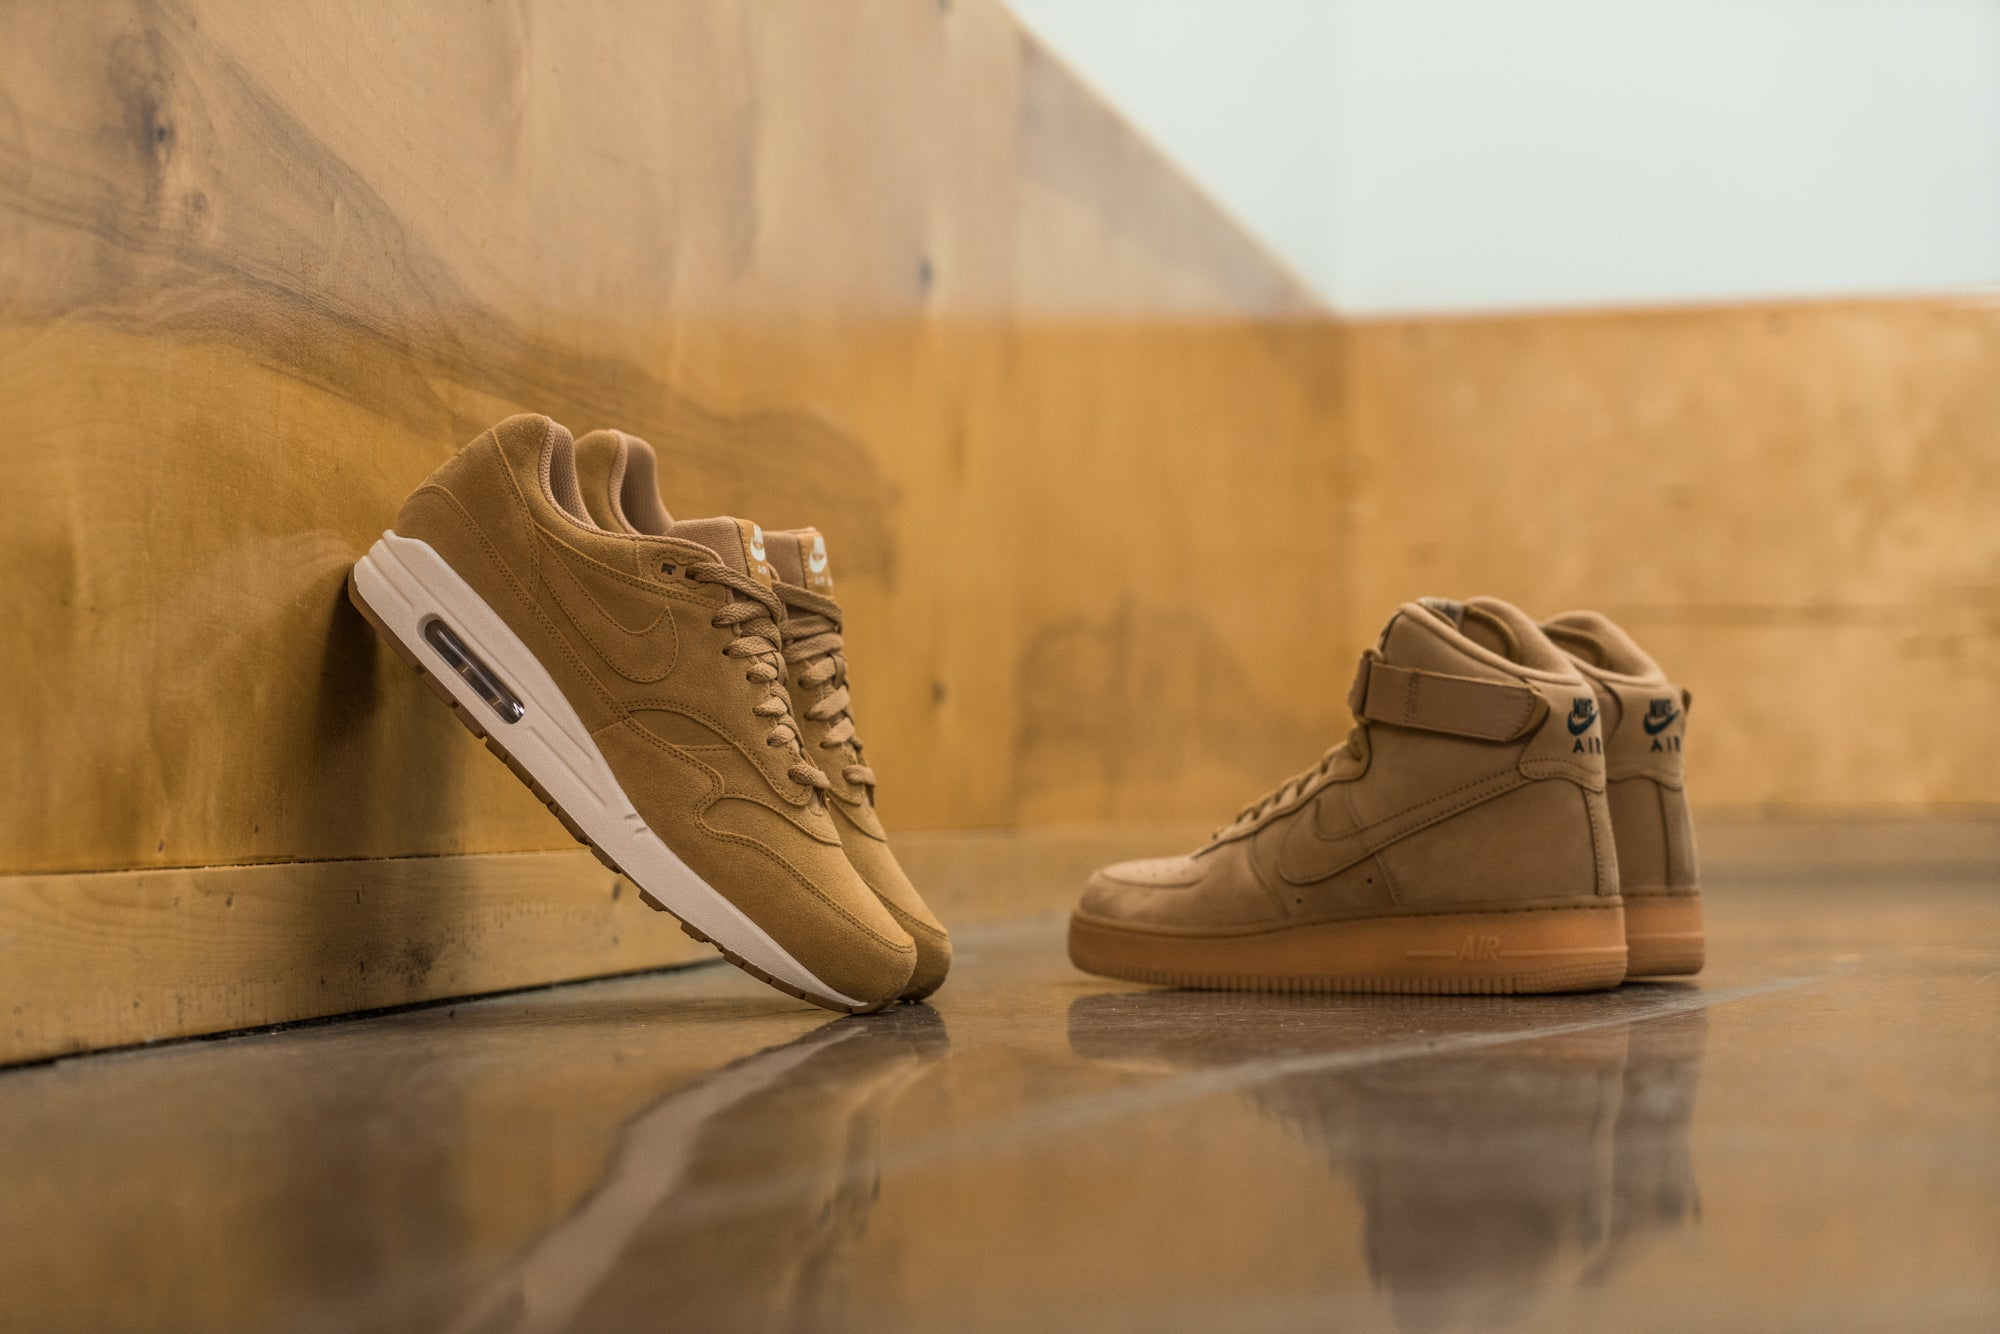 Nike 'Flax Pack' AM1 and AF1 High